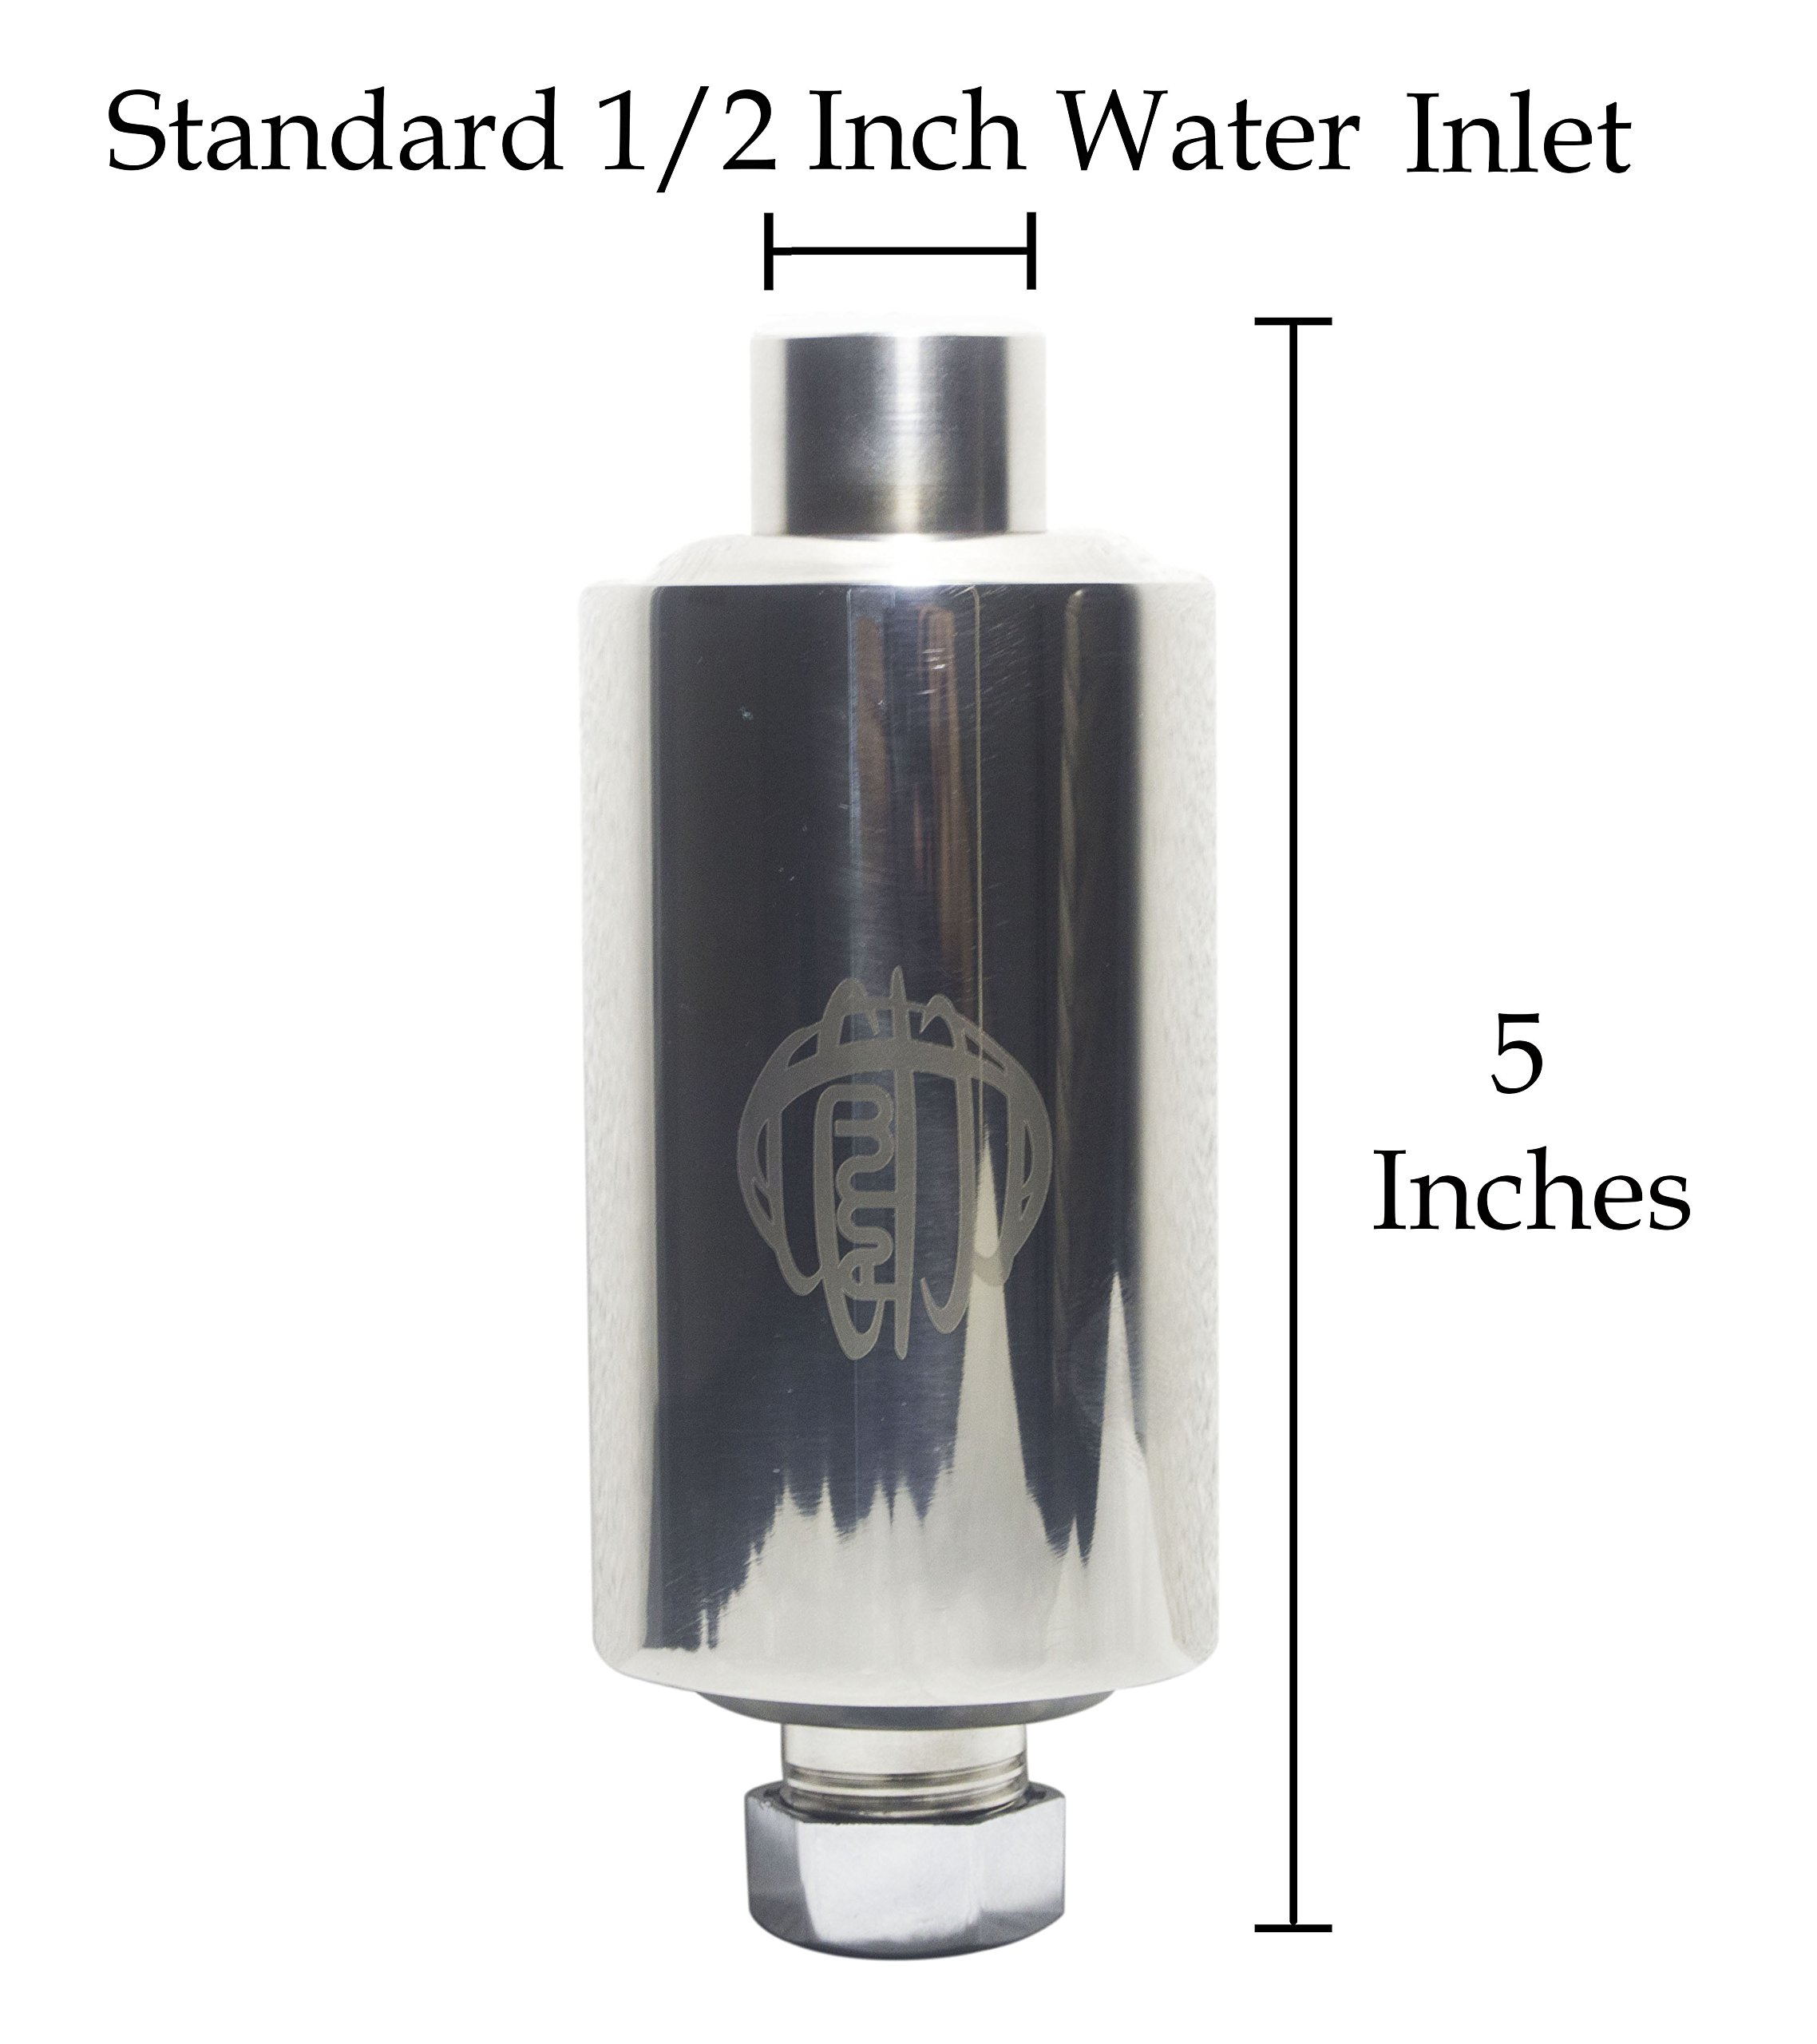 Water Magnetizer Water Softener Hard Water Conditioner Treatment Universal fit for Shower Heads by AMW Pure Life (Image #3)